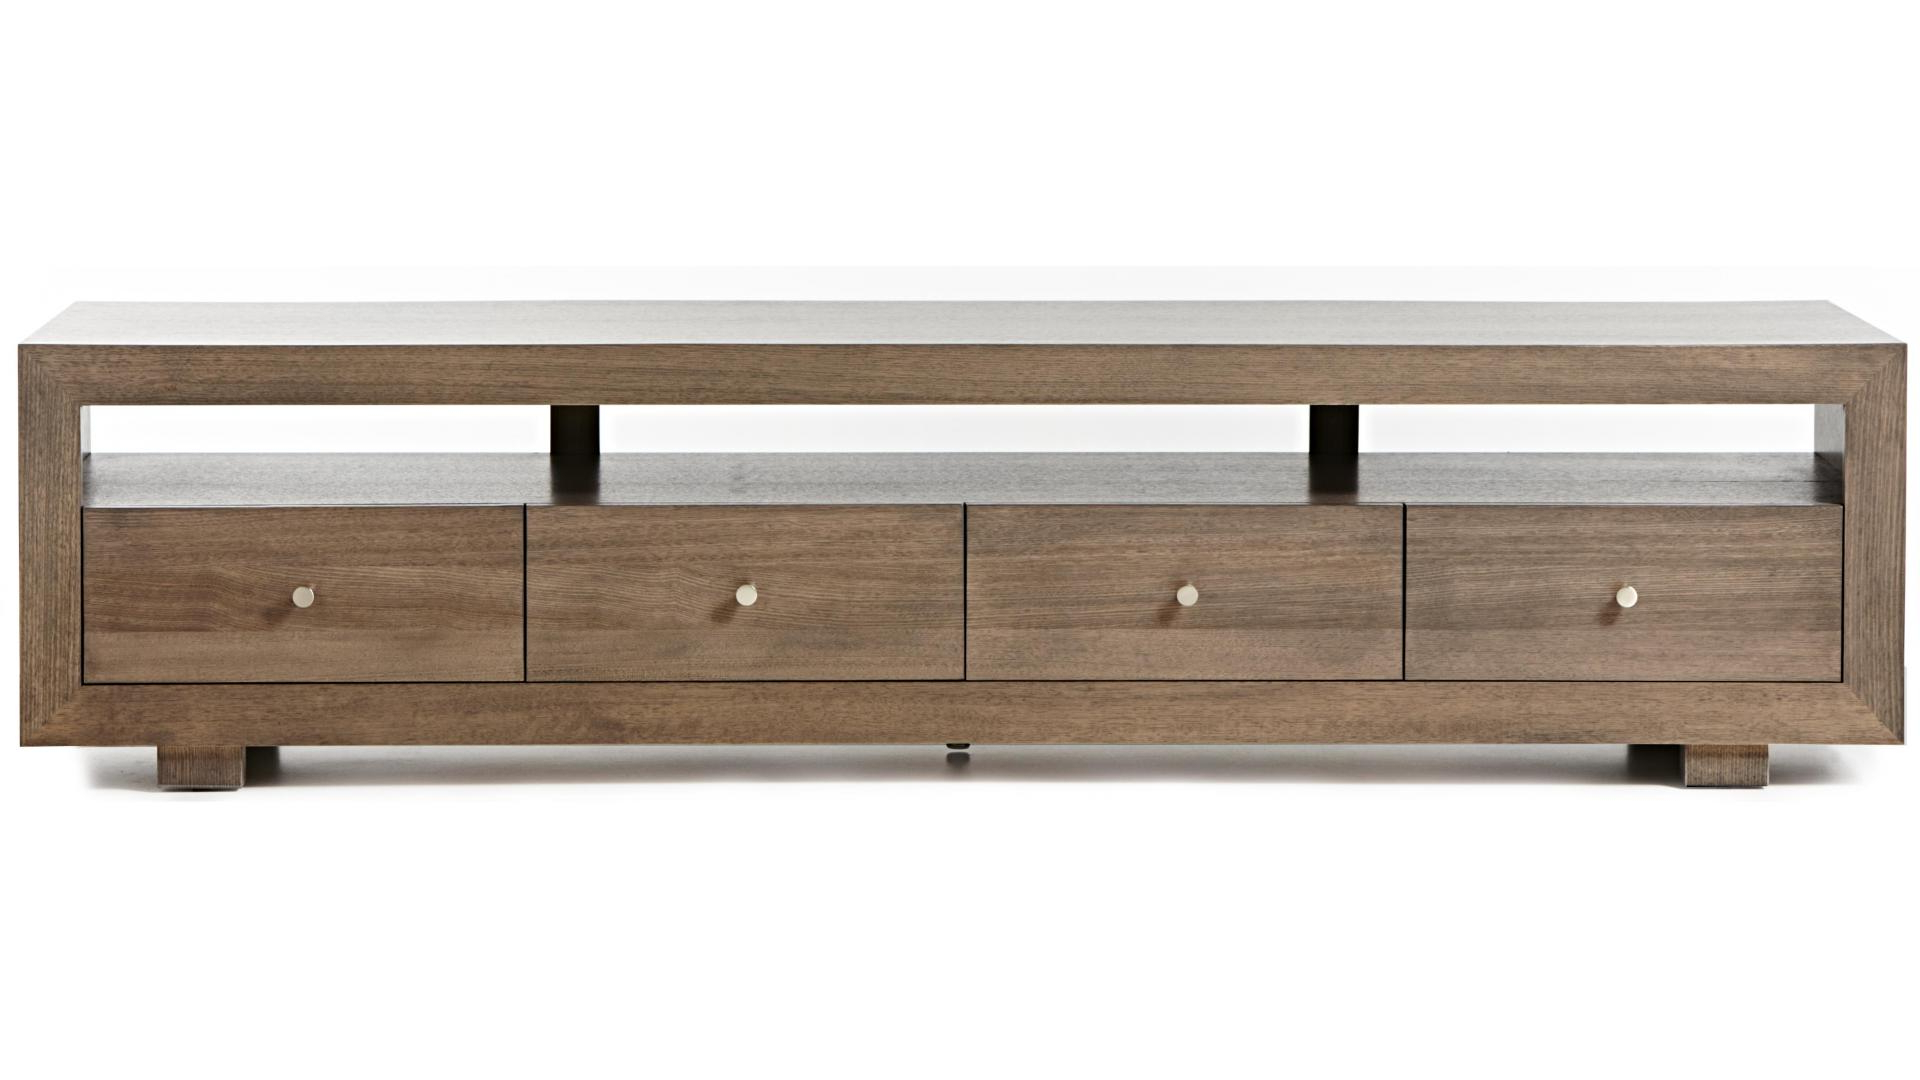 Daintree Tv Unit | Homemakers Furniture Throughout Daintree Tv Stands (View 2 of 3)